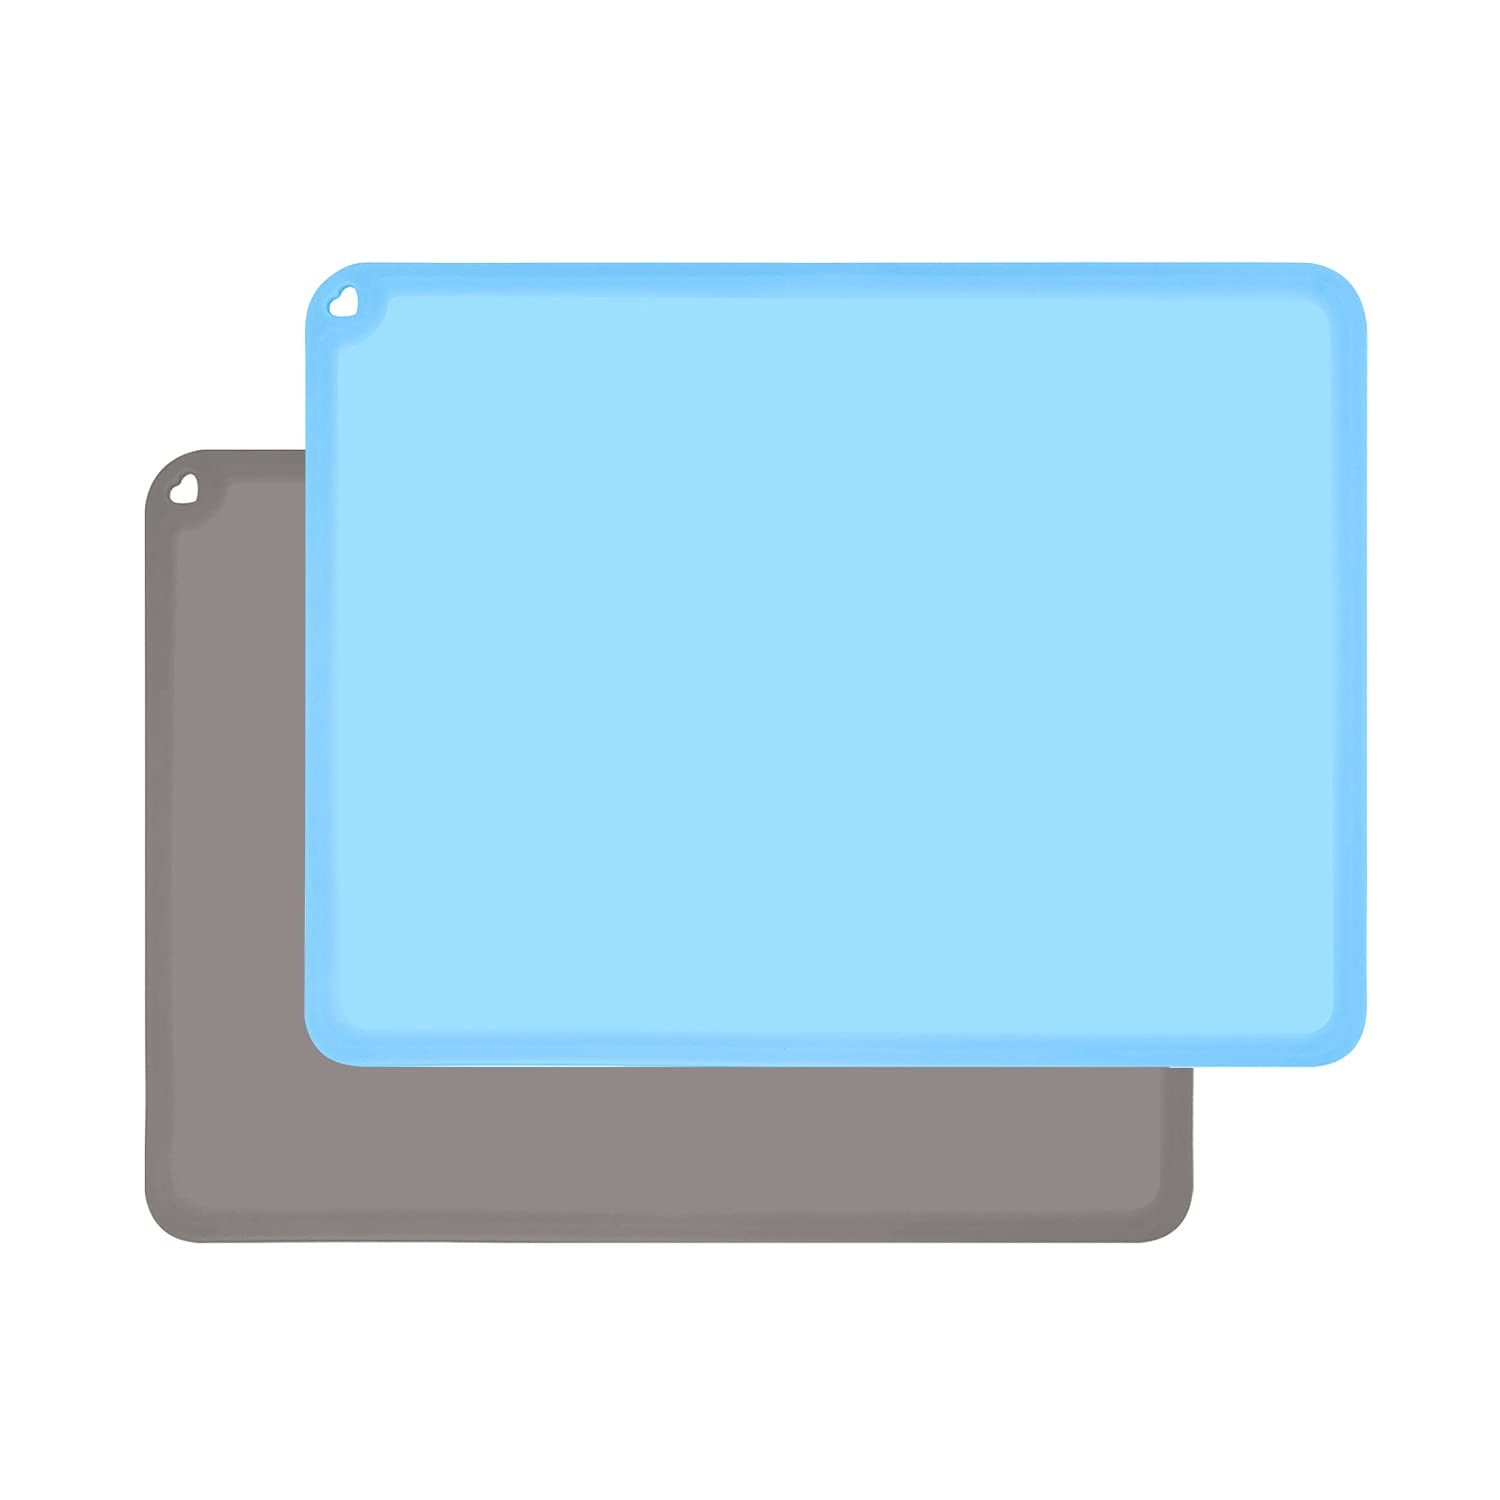 Silicone Kids Placemats, Non-Slip Portable Placemats for Kids Baby Toddlers Table Mats, Reusable Children's Dining Food Mat, 2Pack, Baby Blue/Gray